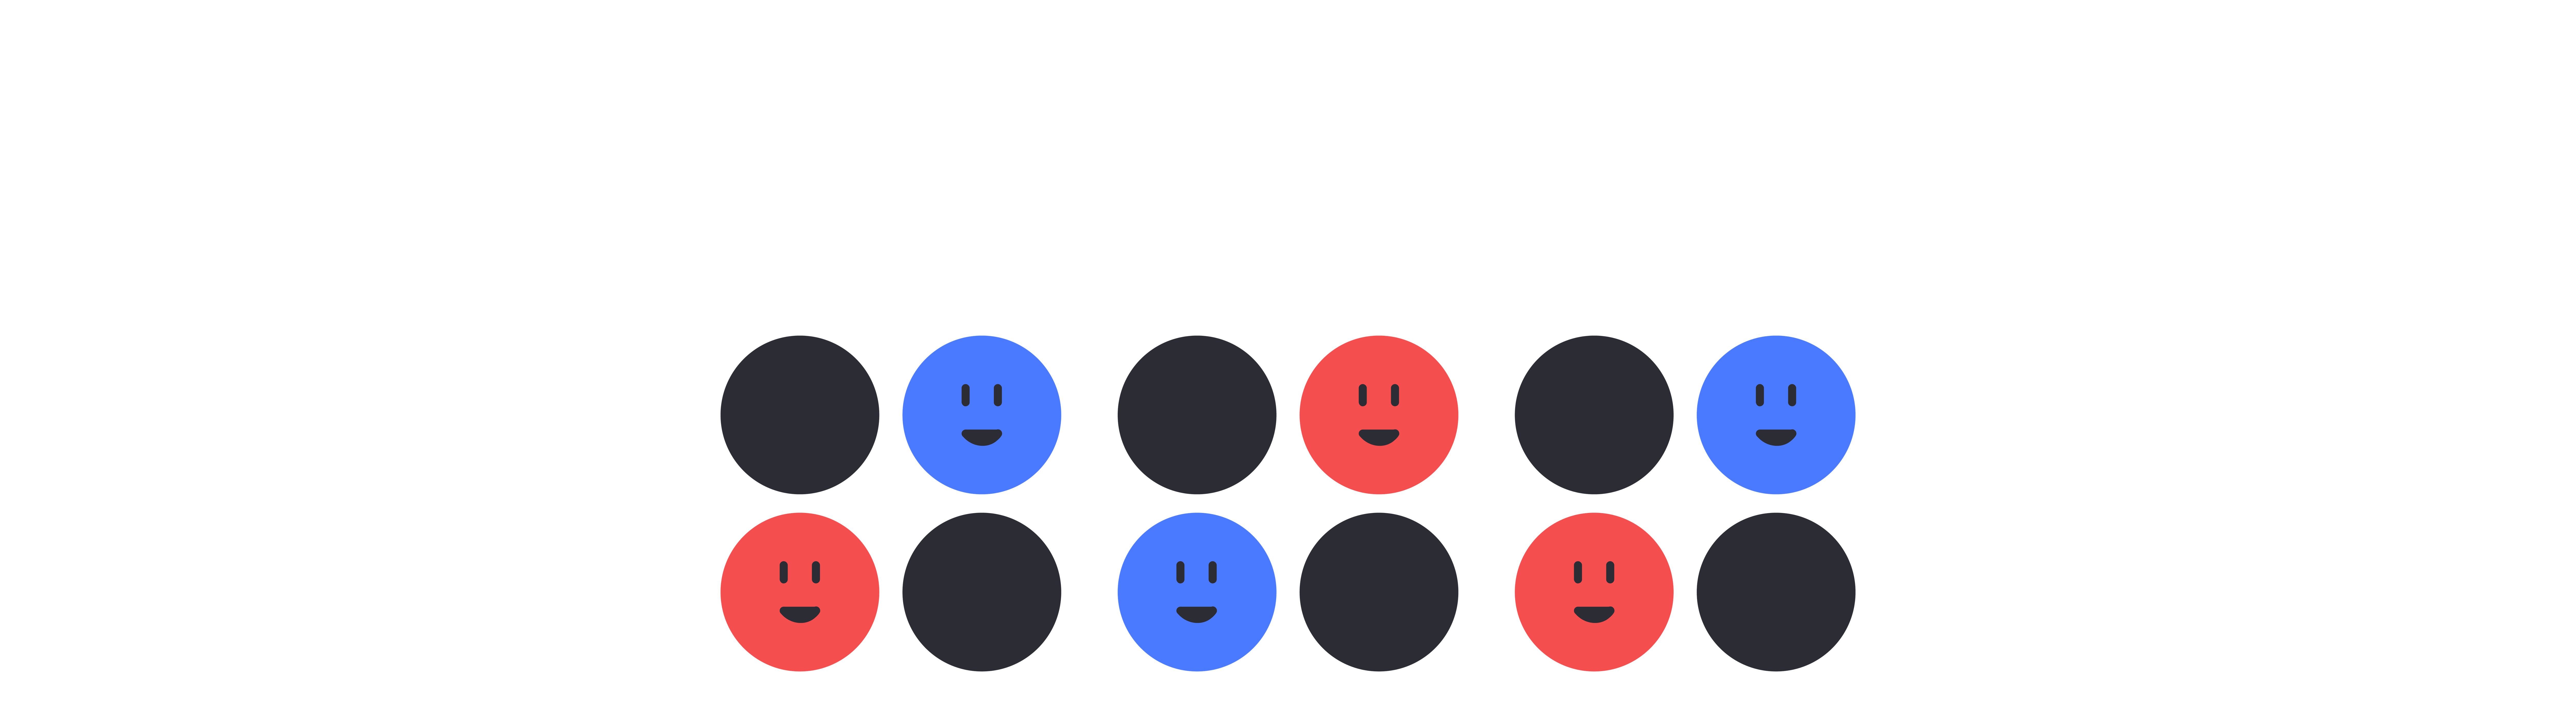 A graphic of smiling faces